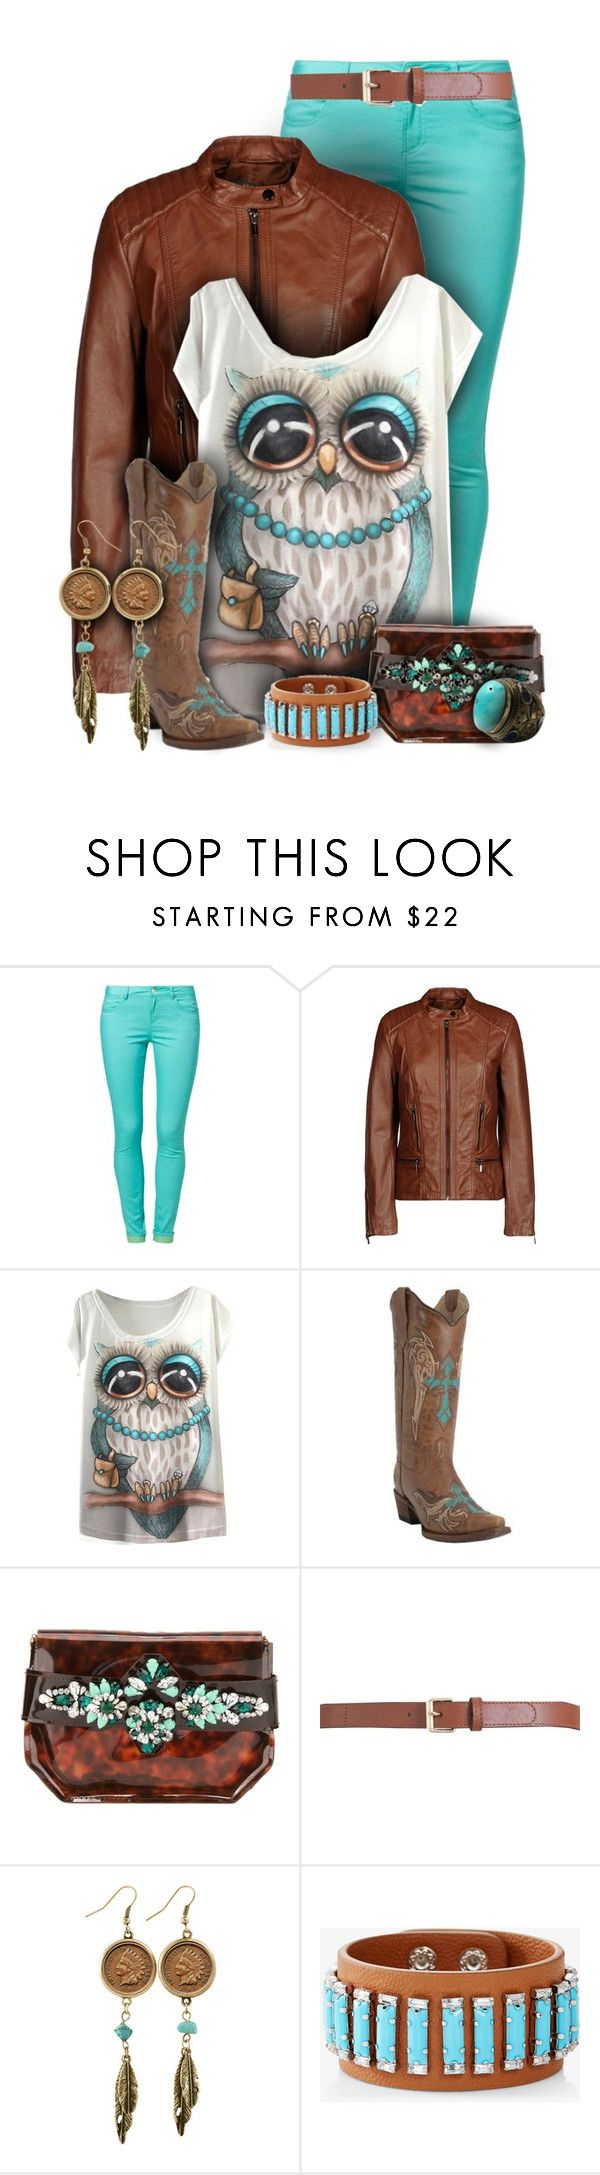 """""""Turquoise and Brown Owl Shirt Fashion"""" by rainbowroad96 ❤ liked on Polyvore featuring even&odd, ESPRIT, Circle G, Shourouk, Maison Boinet, American Coin Treasures and Express"""